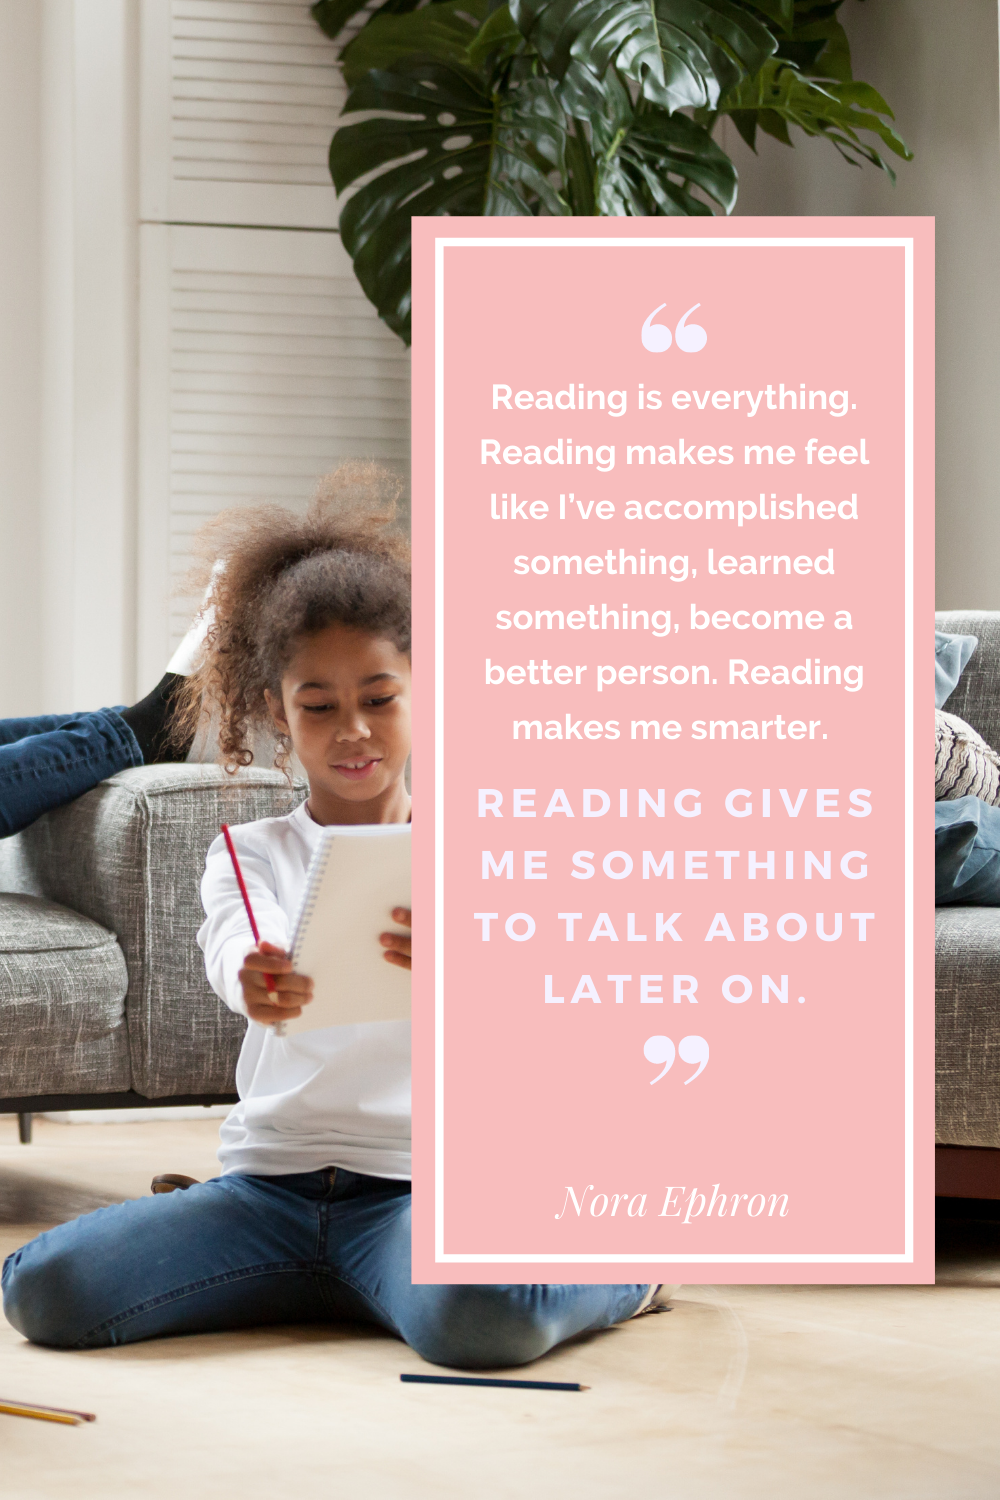 Reading is everything. REading mkes me feel like ive accomplished something learned something become a better person. Reading makes me smarter reading gives me something to talk about later on. Nora Ephron